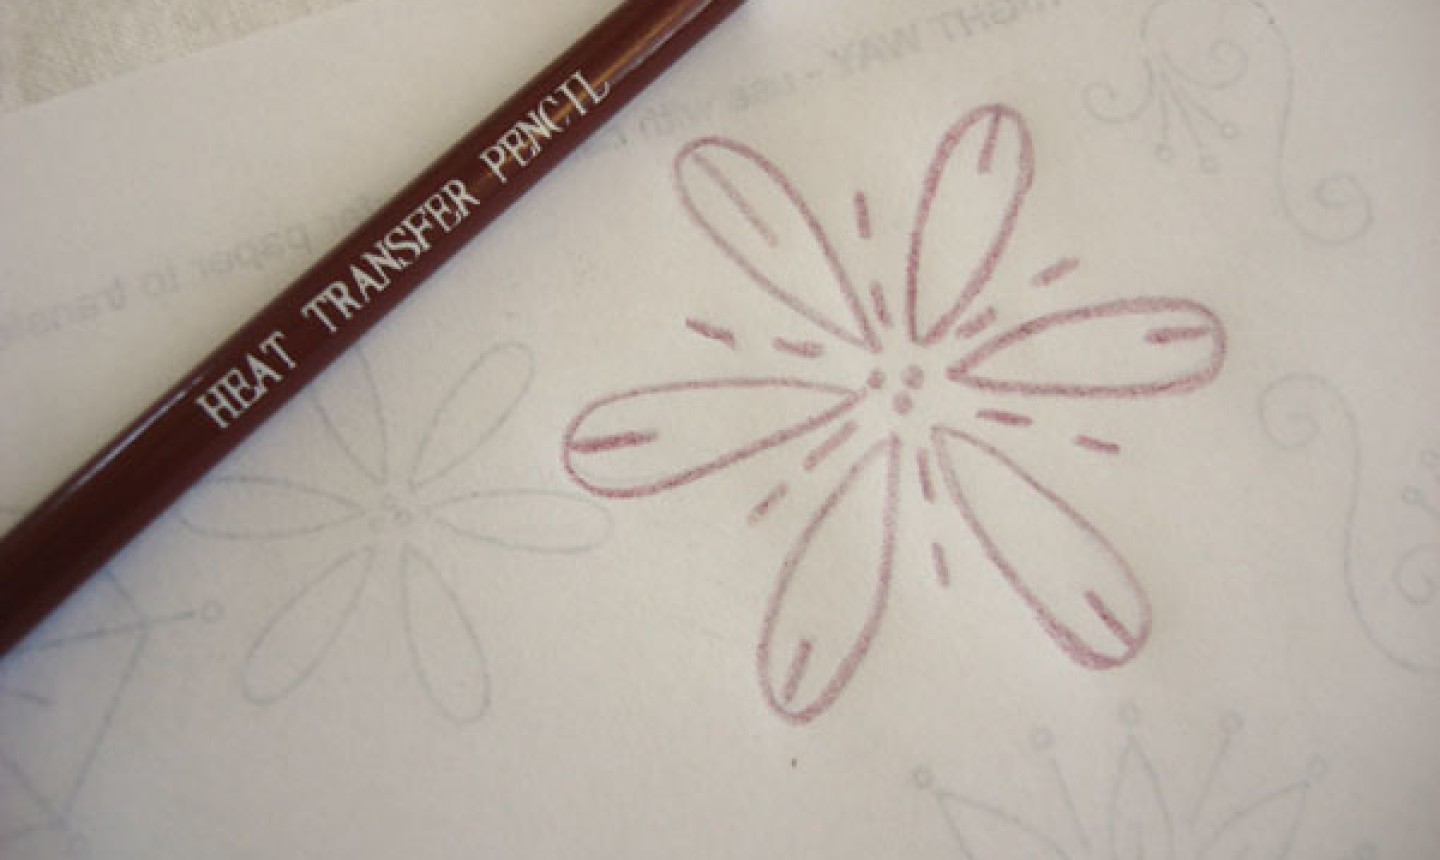 Ribbon Embroidery Patterns Free 5 Simple Ways To Transfer Embroidery Designs